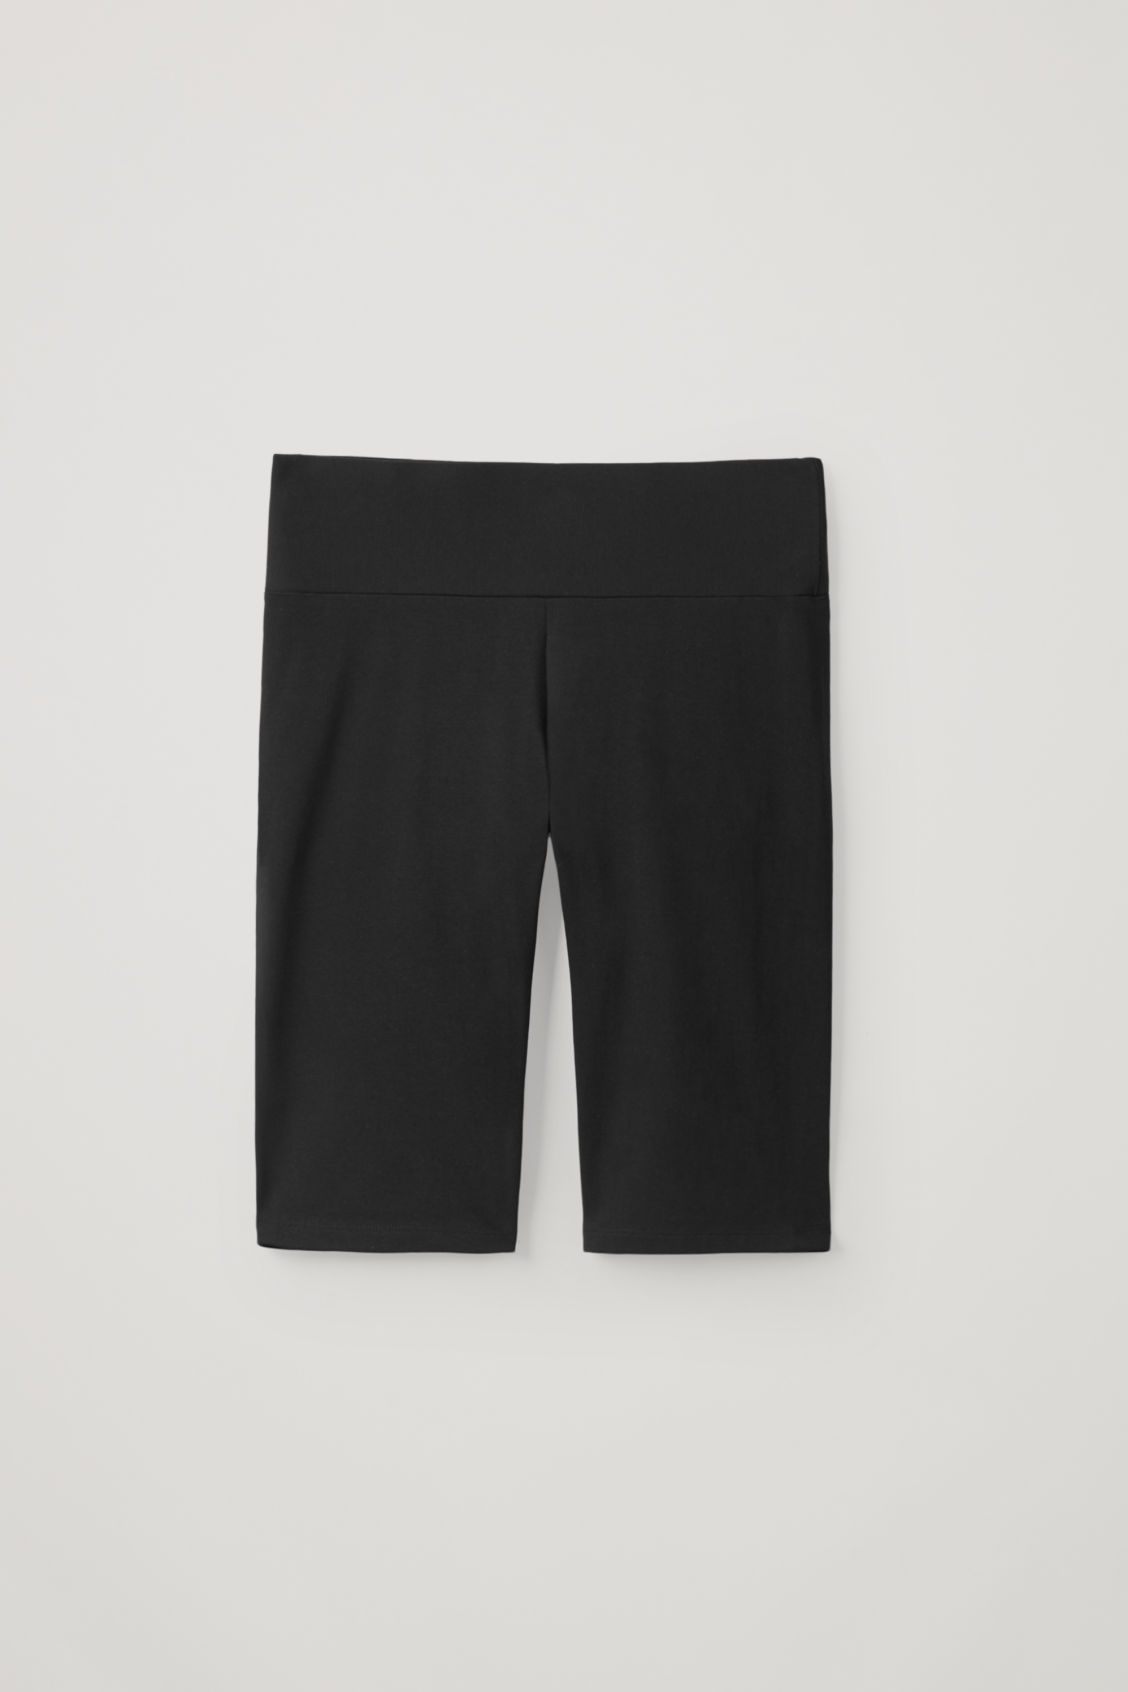 Cos Cotton Jersey Slim-fit Shorts In Black